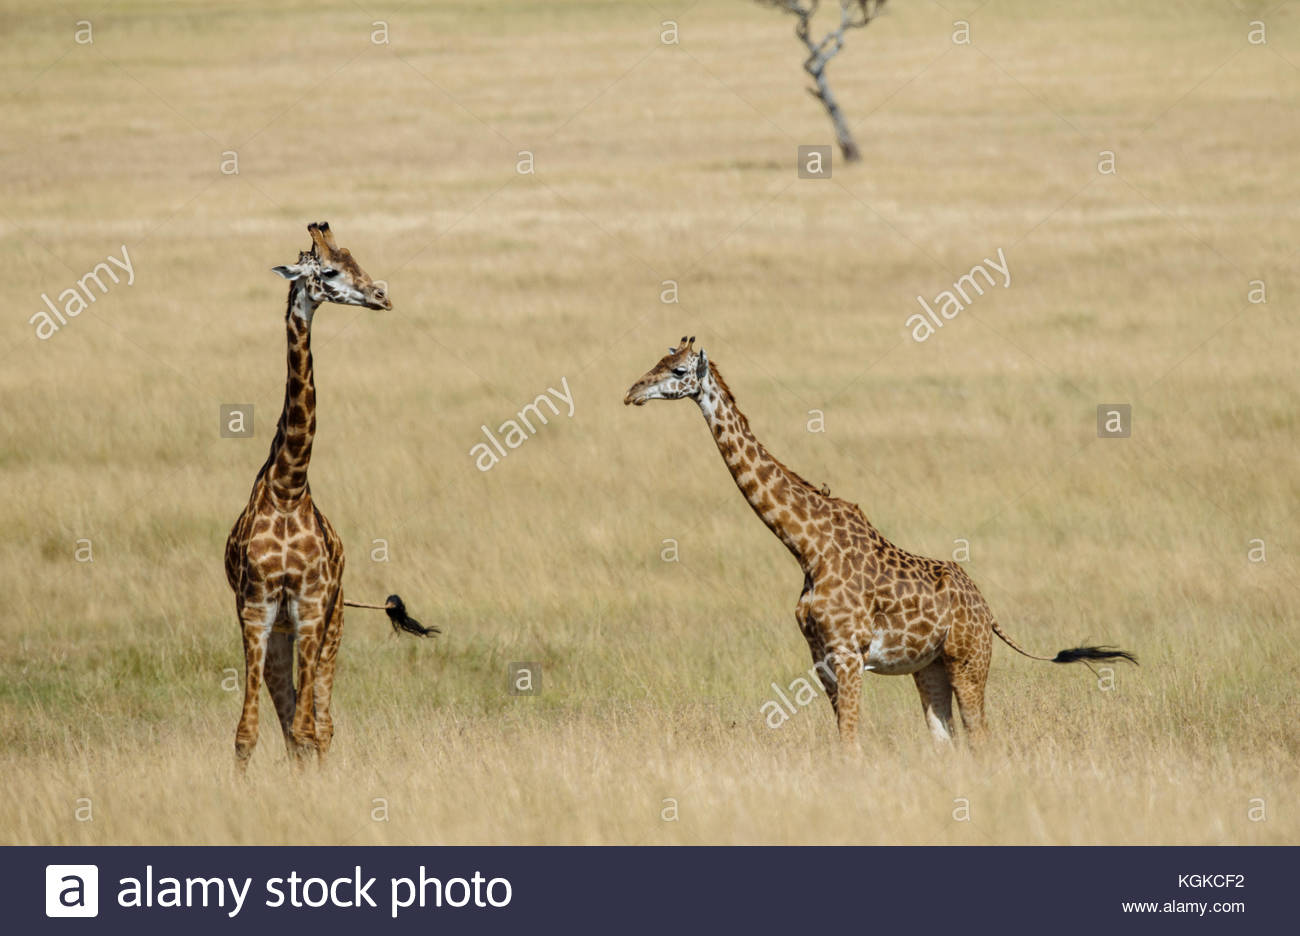 A group of giraffe, Giraffa camelopardalis, walking through tall grass, Masai Mara National Reserve. Stock Photo